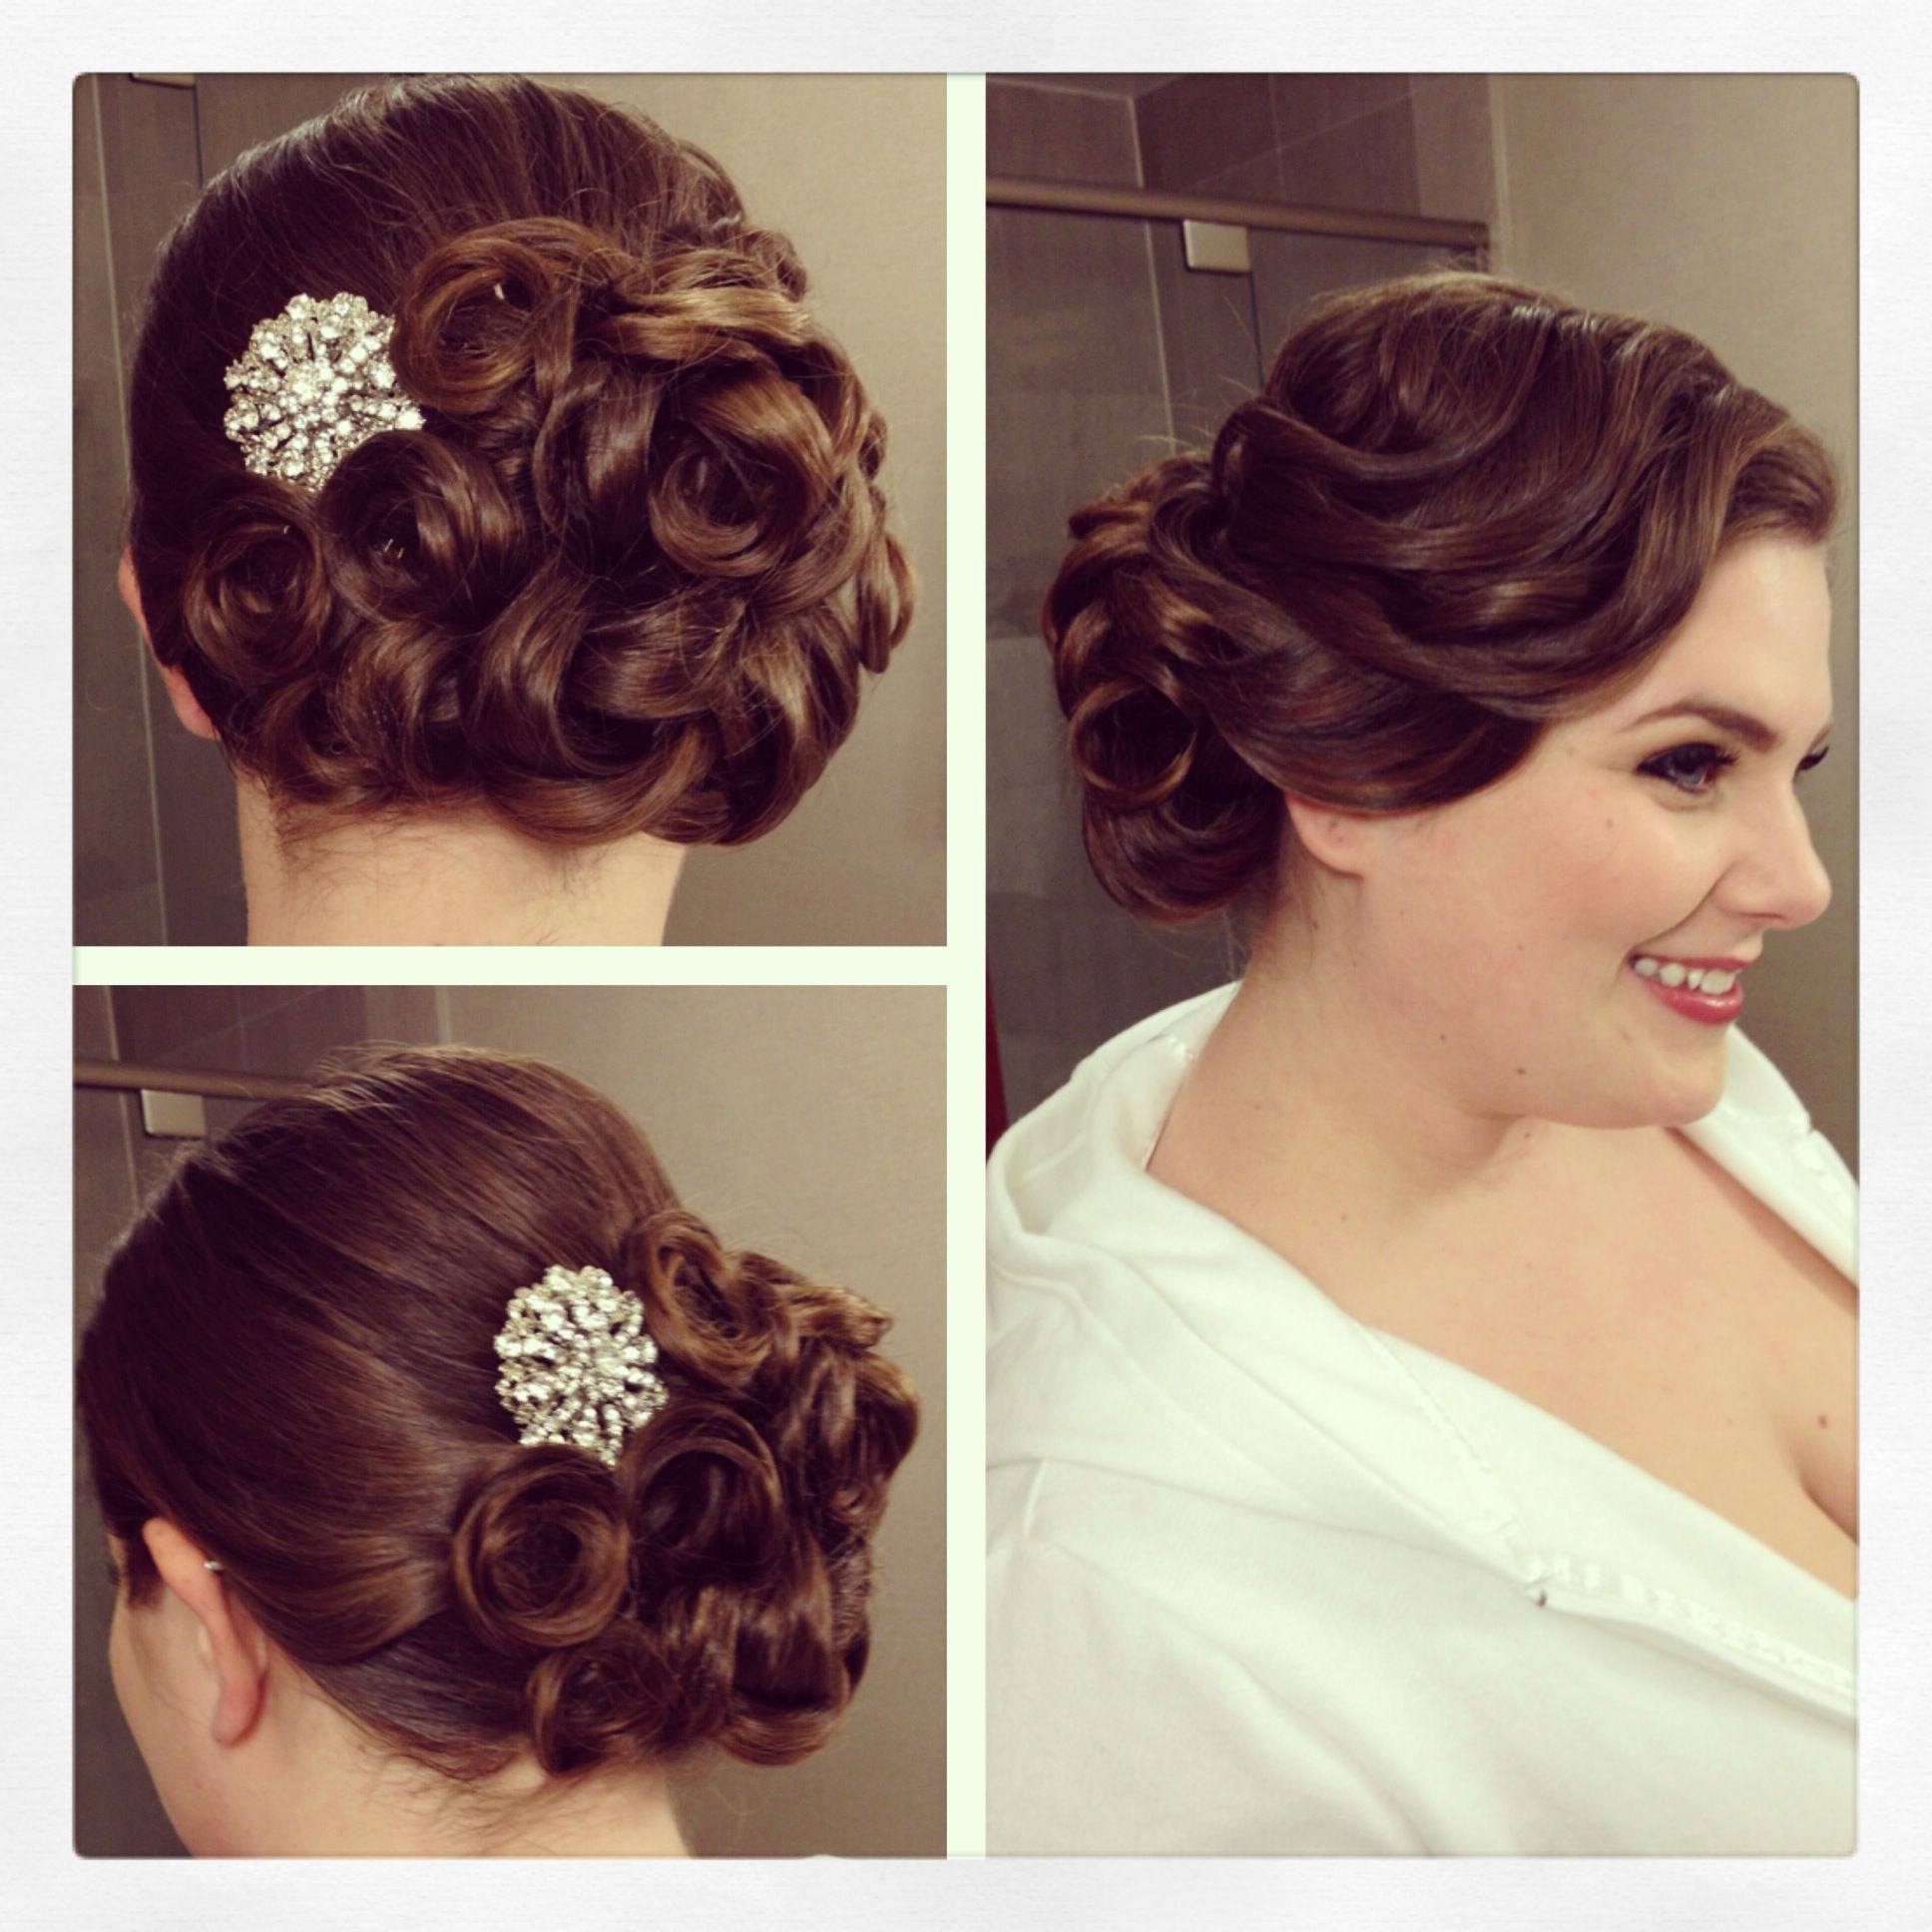 Vintage Side Updo, Vintage Hairstyle, Pin Curls, Bridal Hair, Bridal Within Recent Pin Up Curl Hairstyles For Bridal Hair (Gallery 1 of 20)